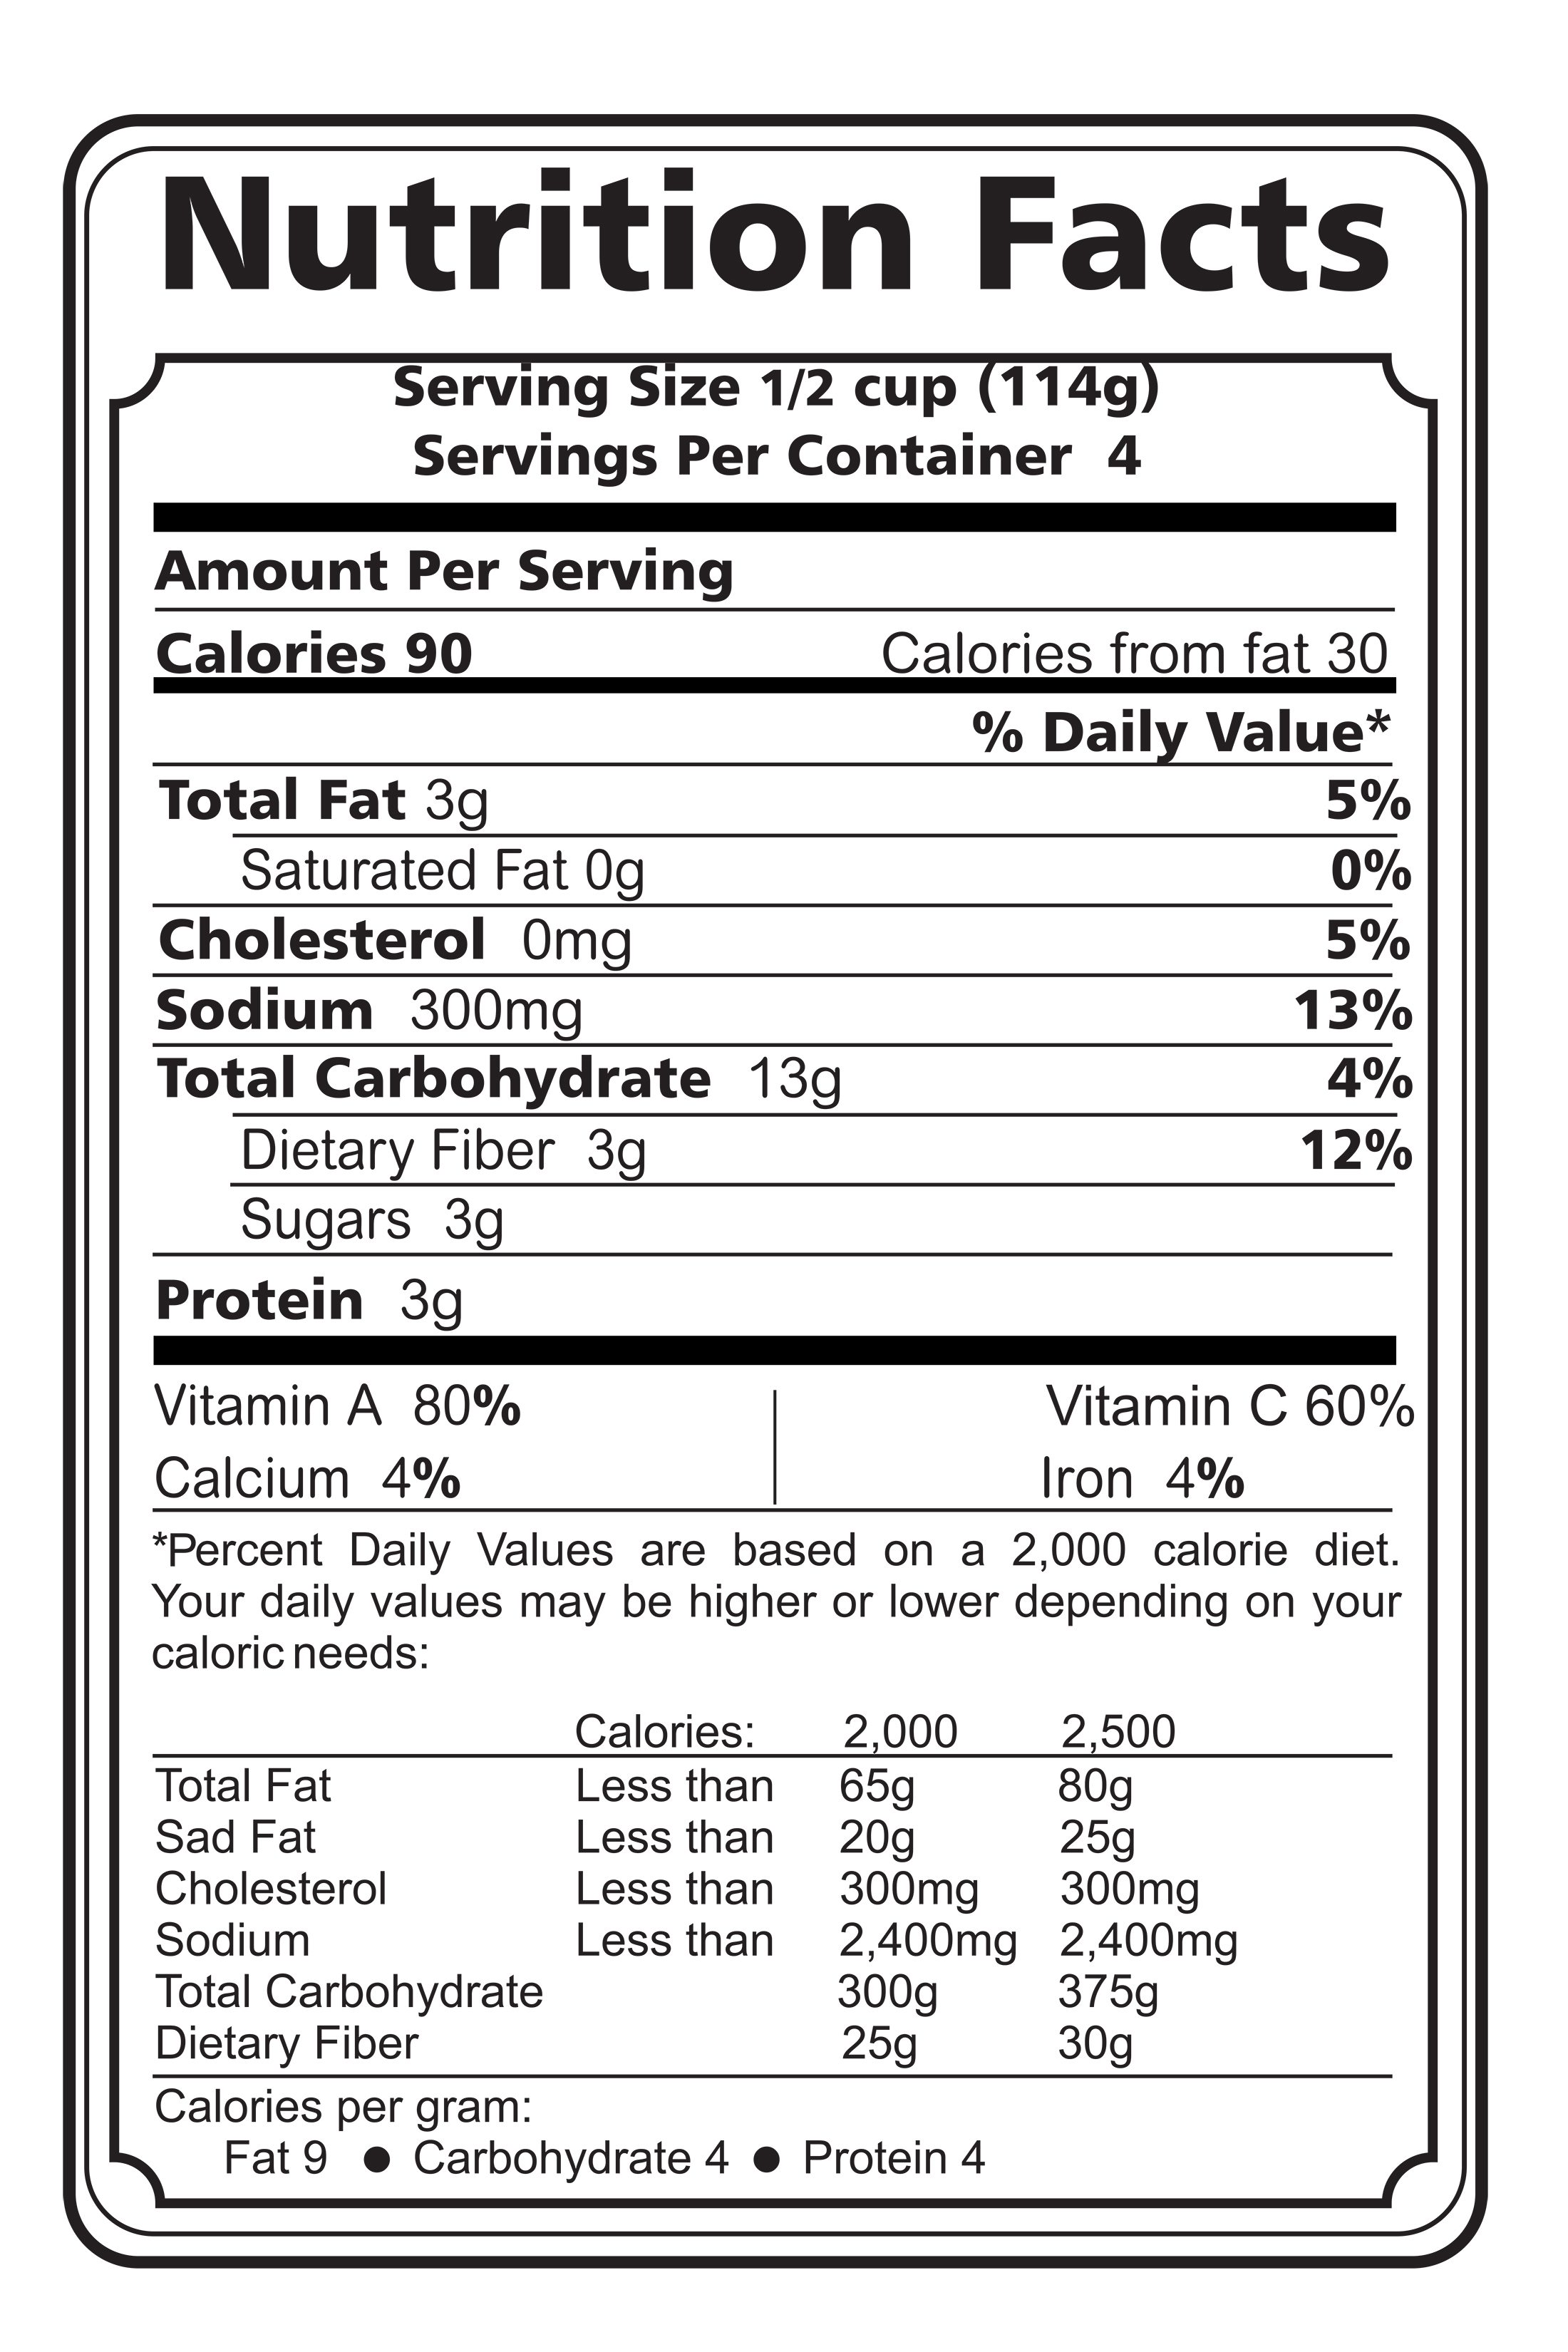 Worksheets Nutrition Labels Worksheet understanding nutrition labels worksheet intrepidpath food label tips